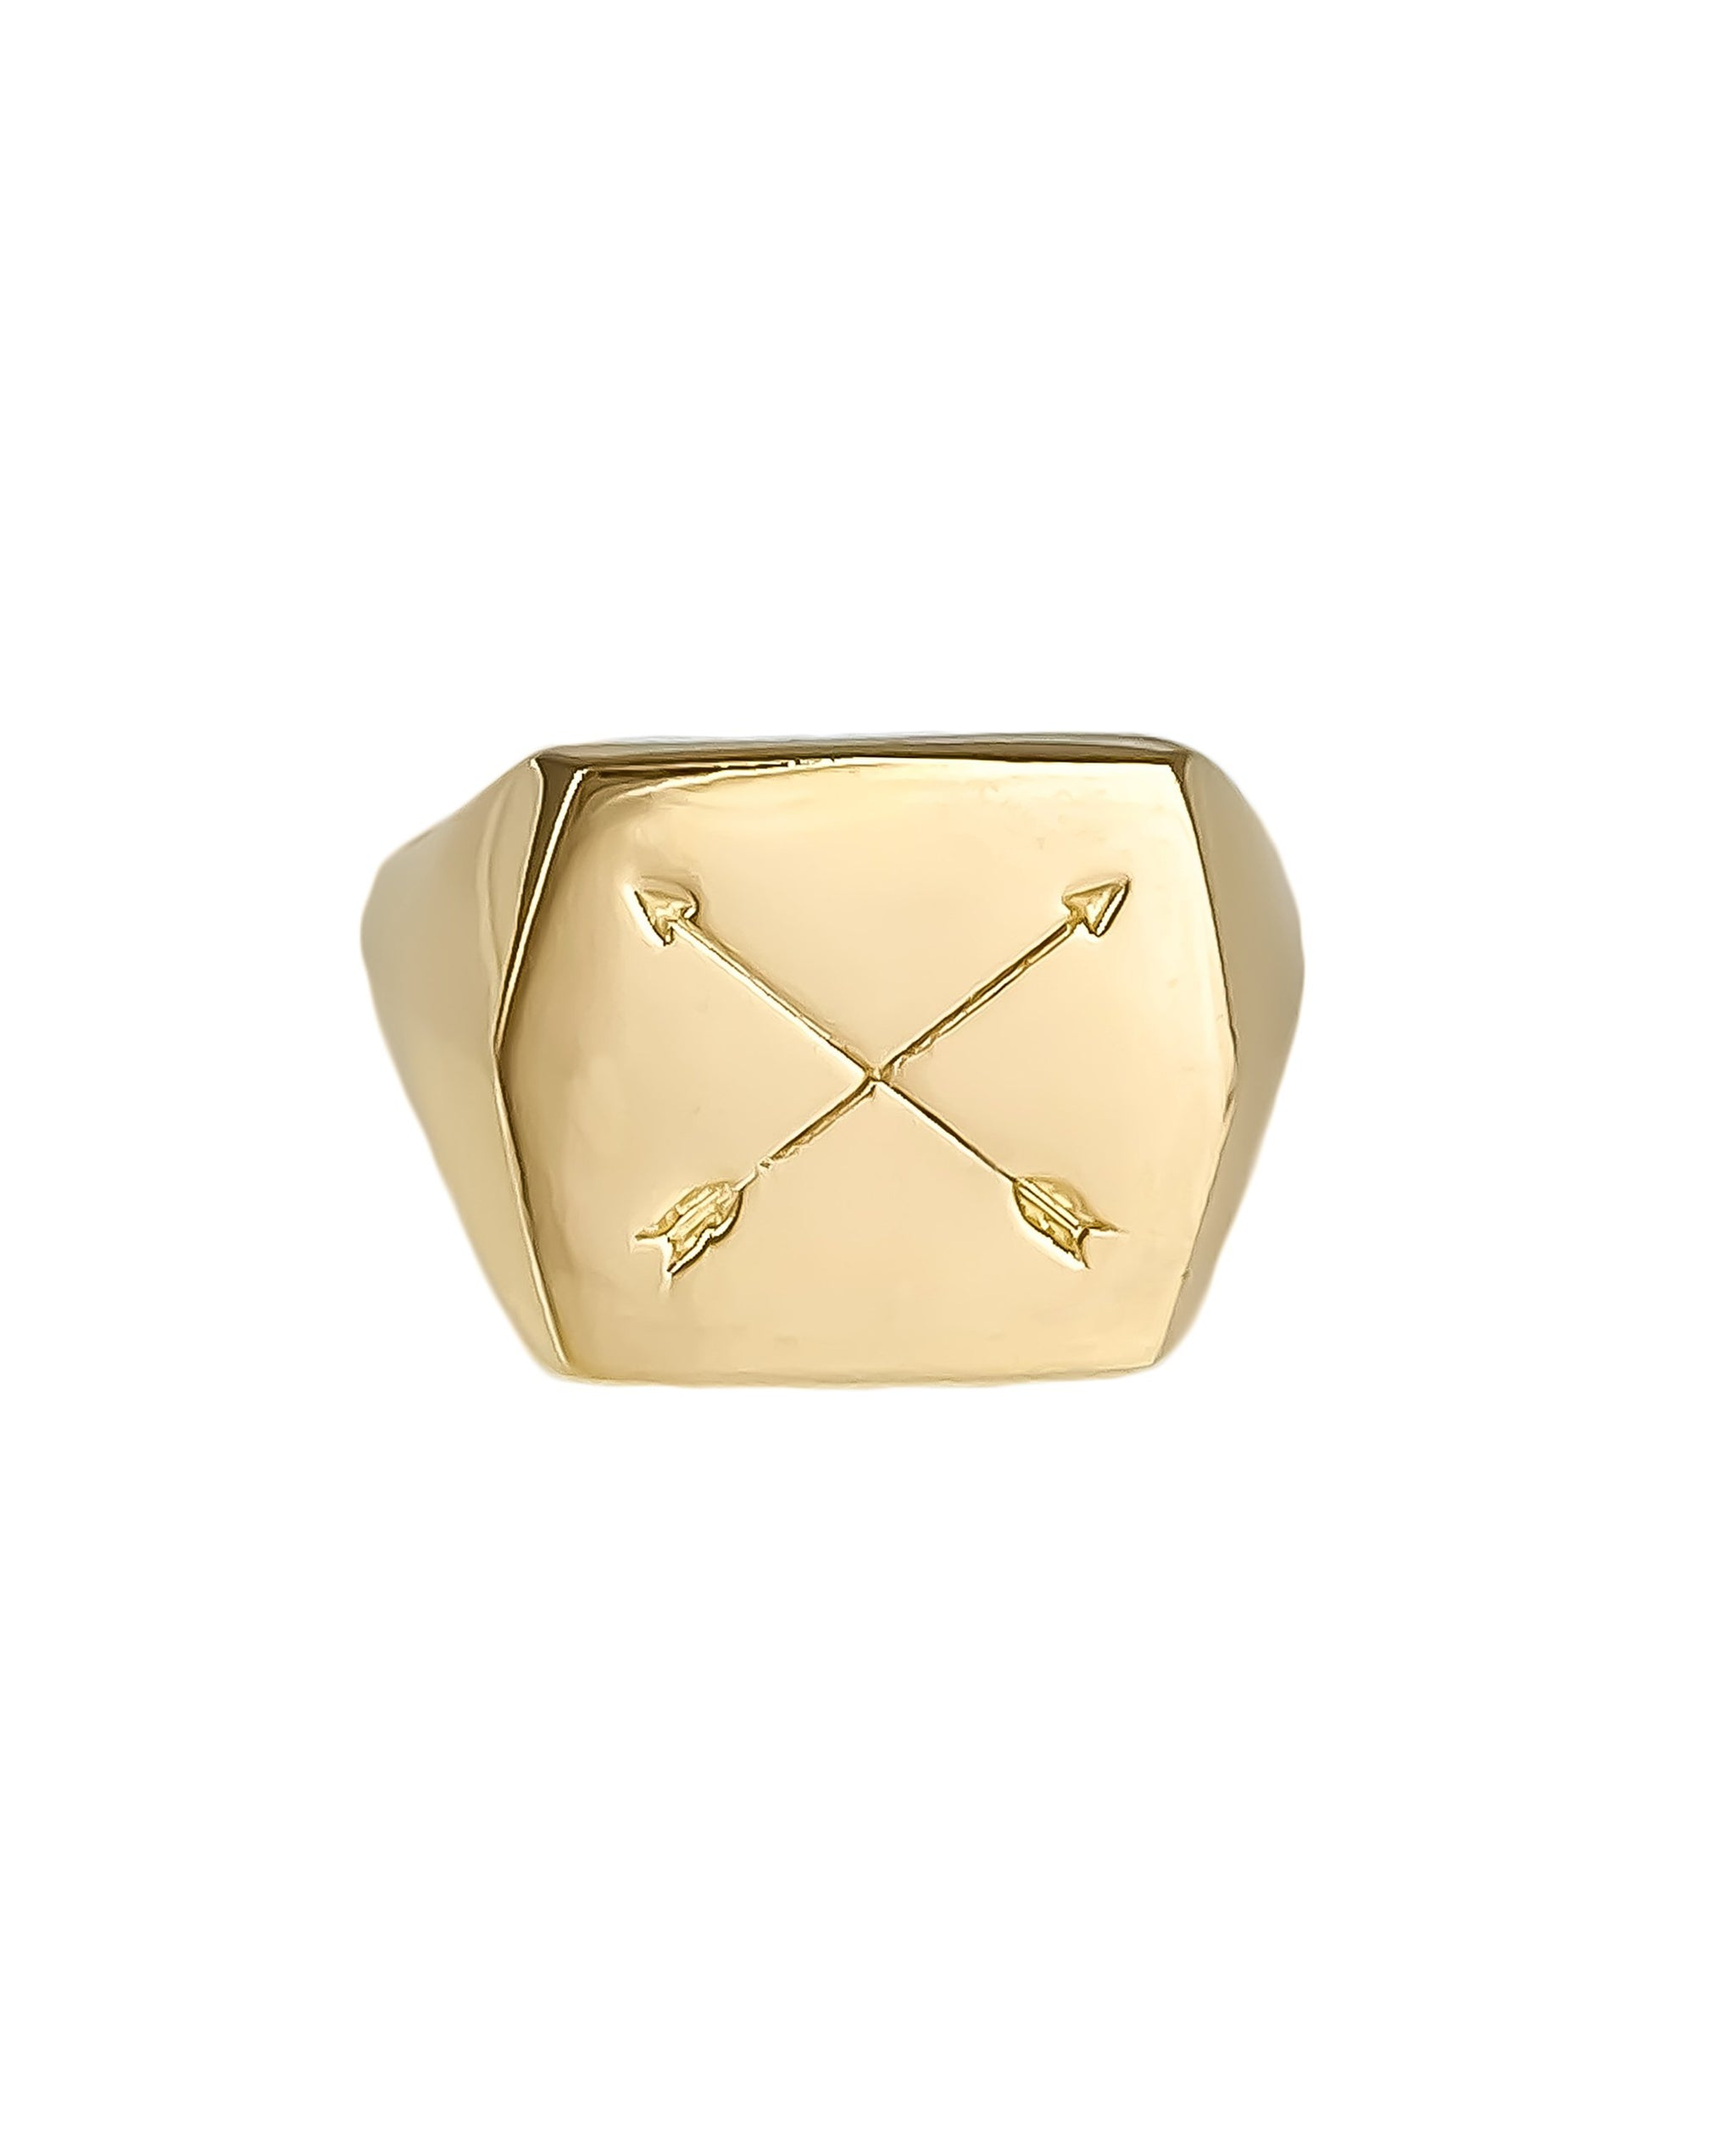 Nomad Ring, 14k Yellow Gold Squared Signet Ring with Crossed arrows, handmade by Turquoise + Tobacco